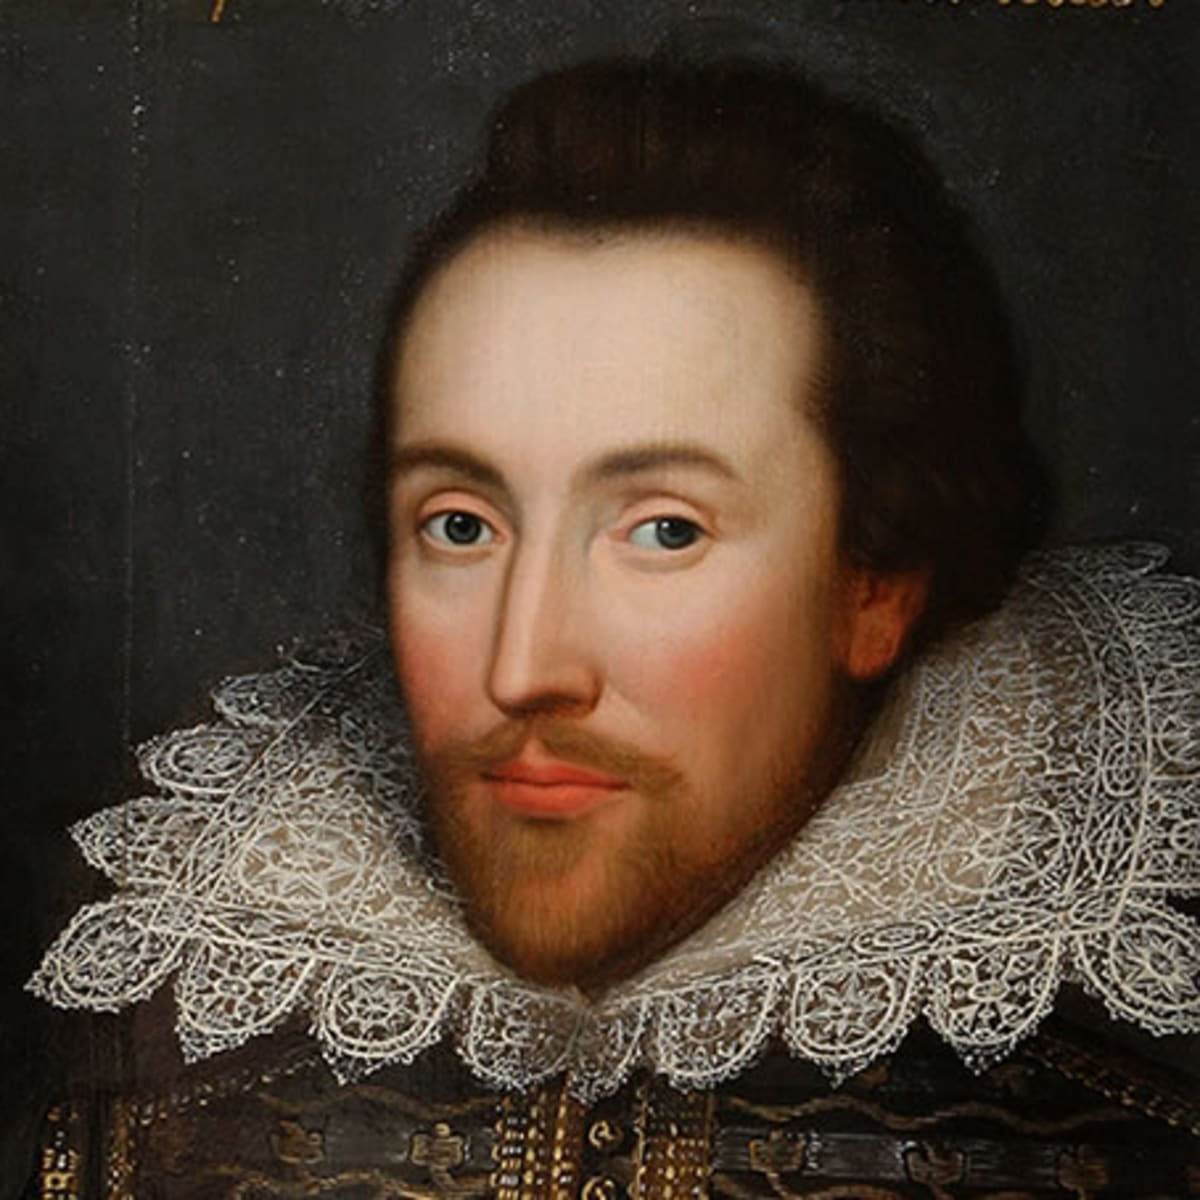 William Shakespeare on emaze